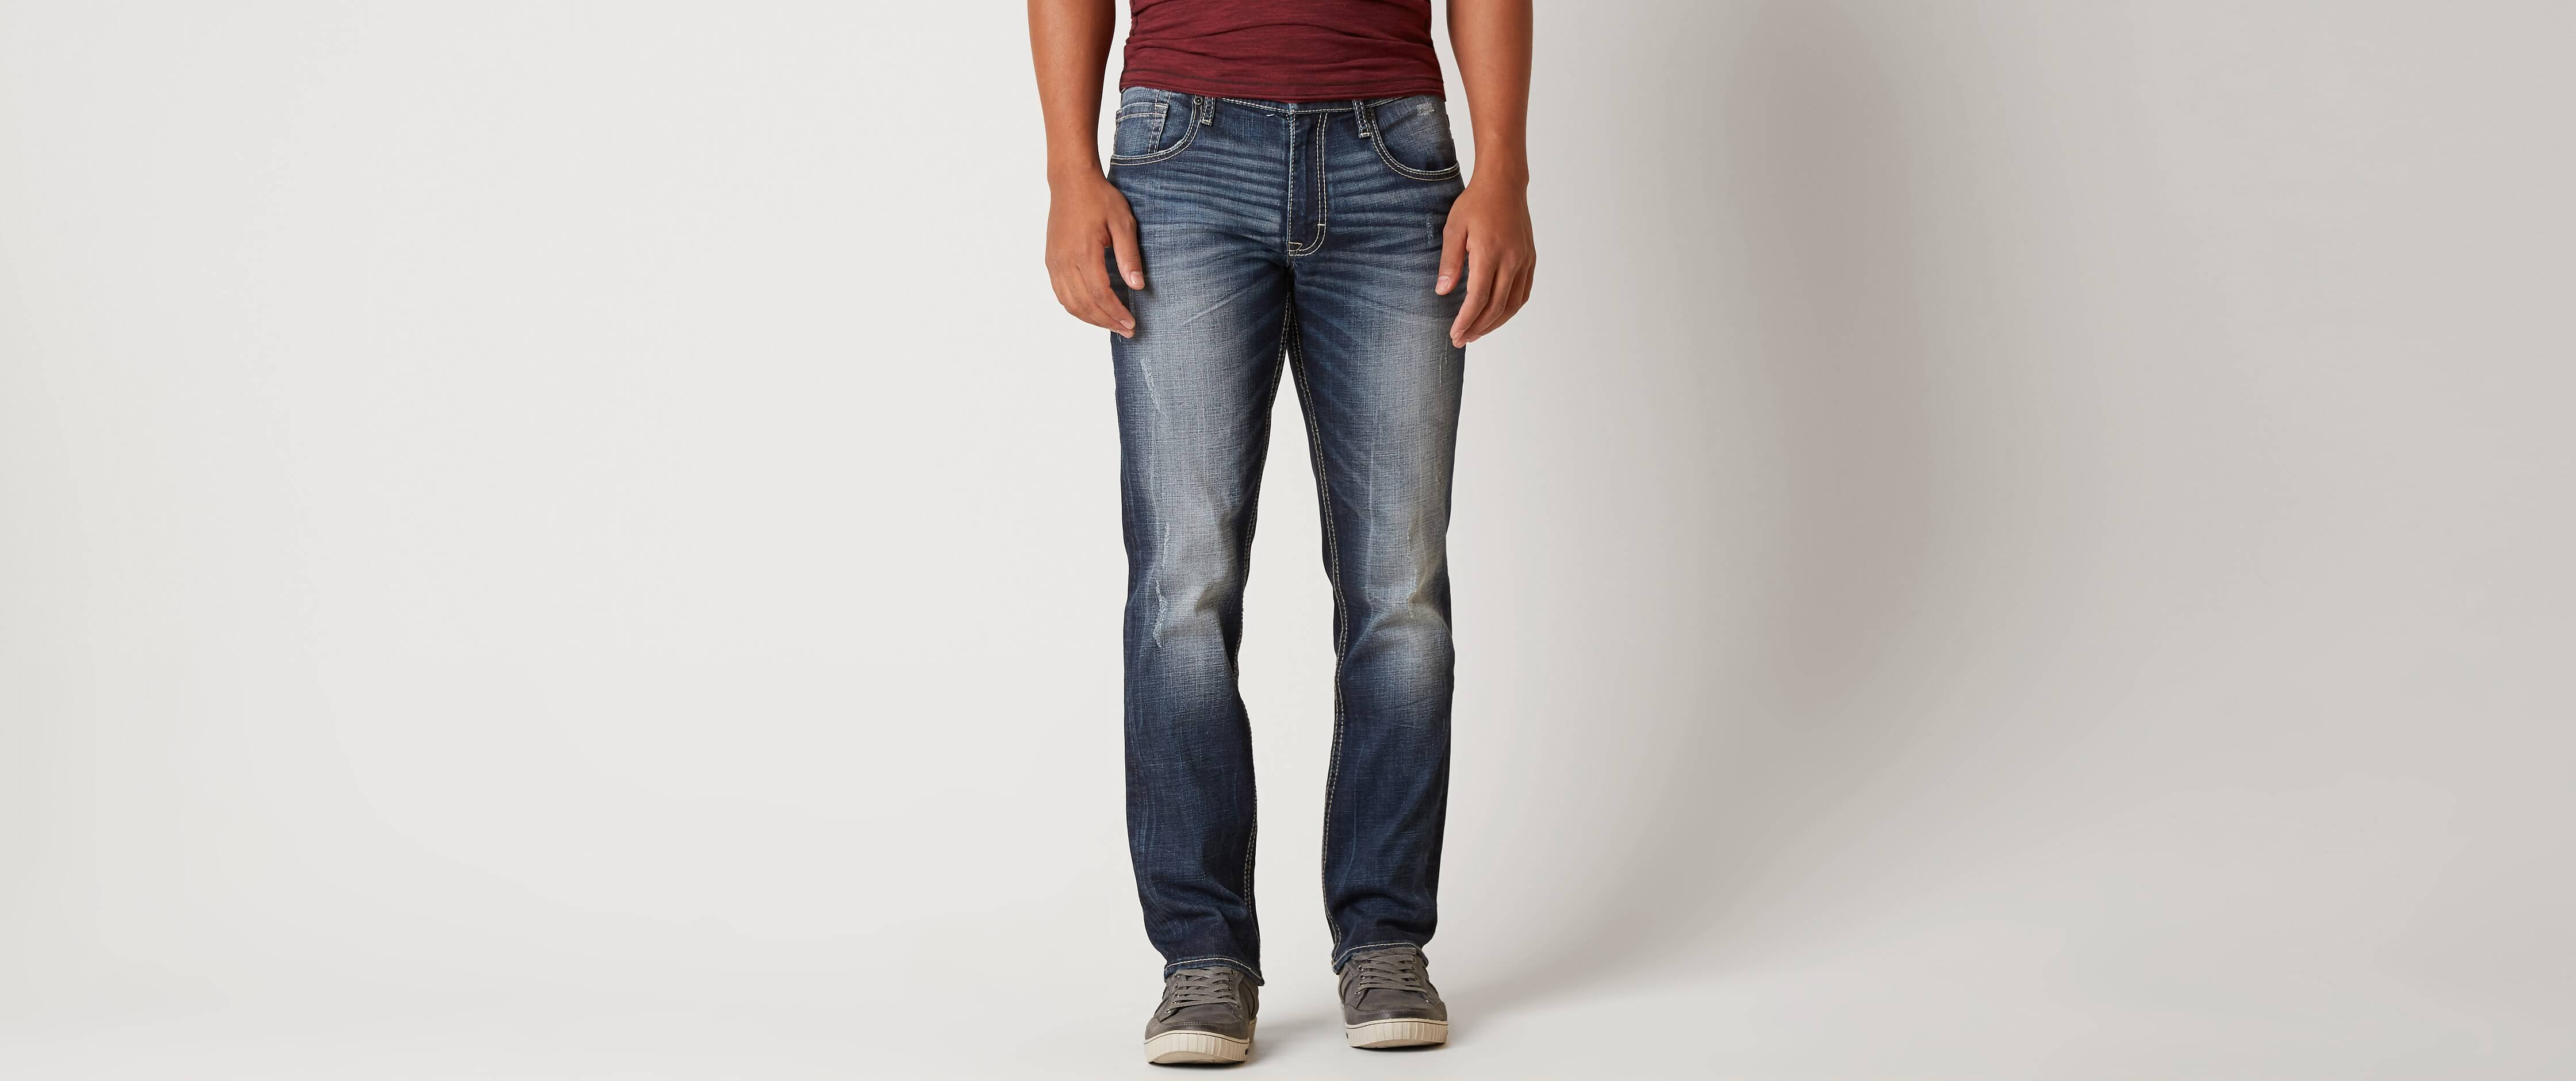 Browse our top designer clothing for men at Buckle. Find your favorite men's clothing brands to complete your look in a variety of design, style and detail.